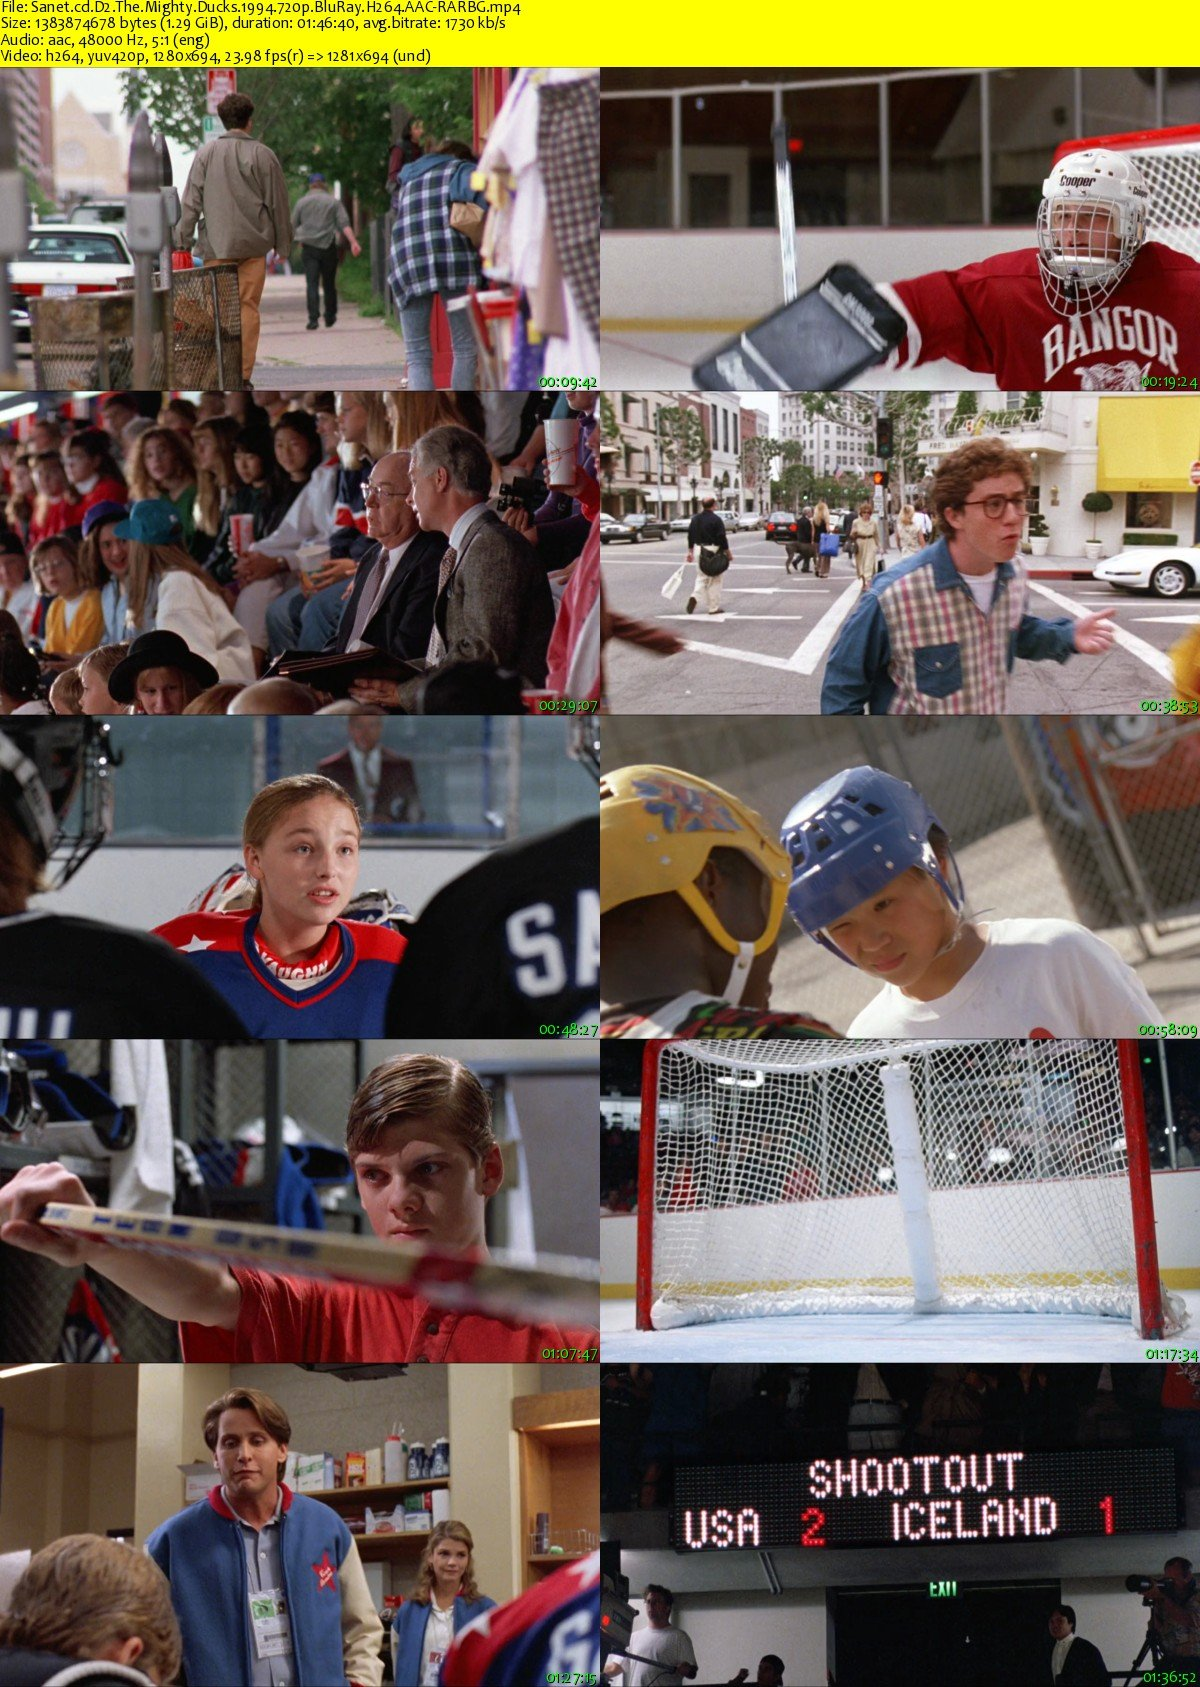 download d2 the mighty ducks 1994 720p bluray h264 aac